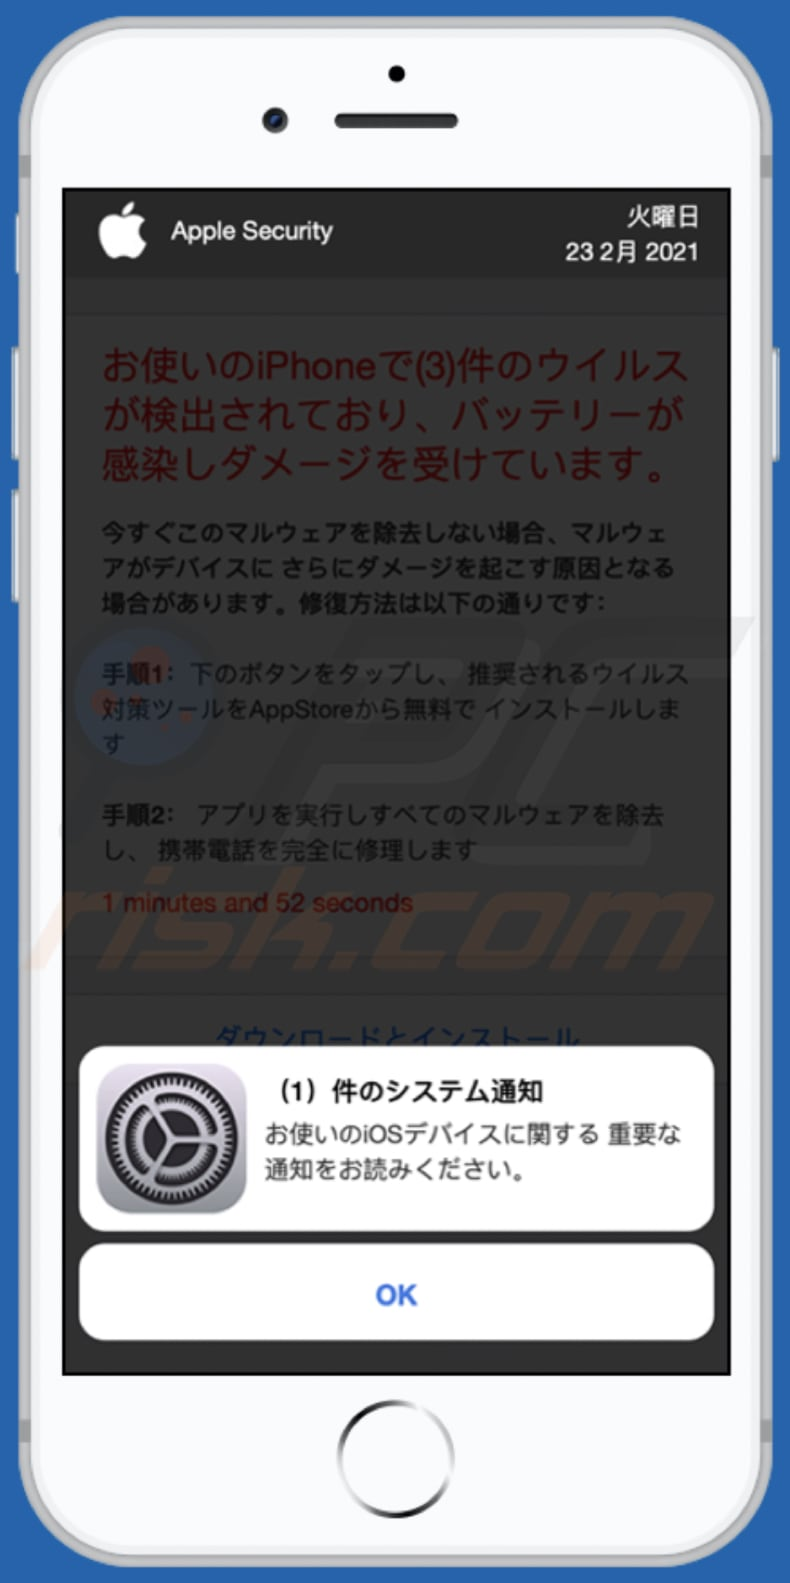 app-department.report pop-up scam japanese variant-pop-up